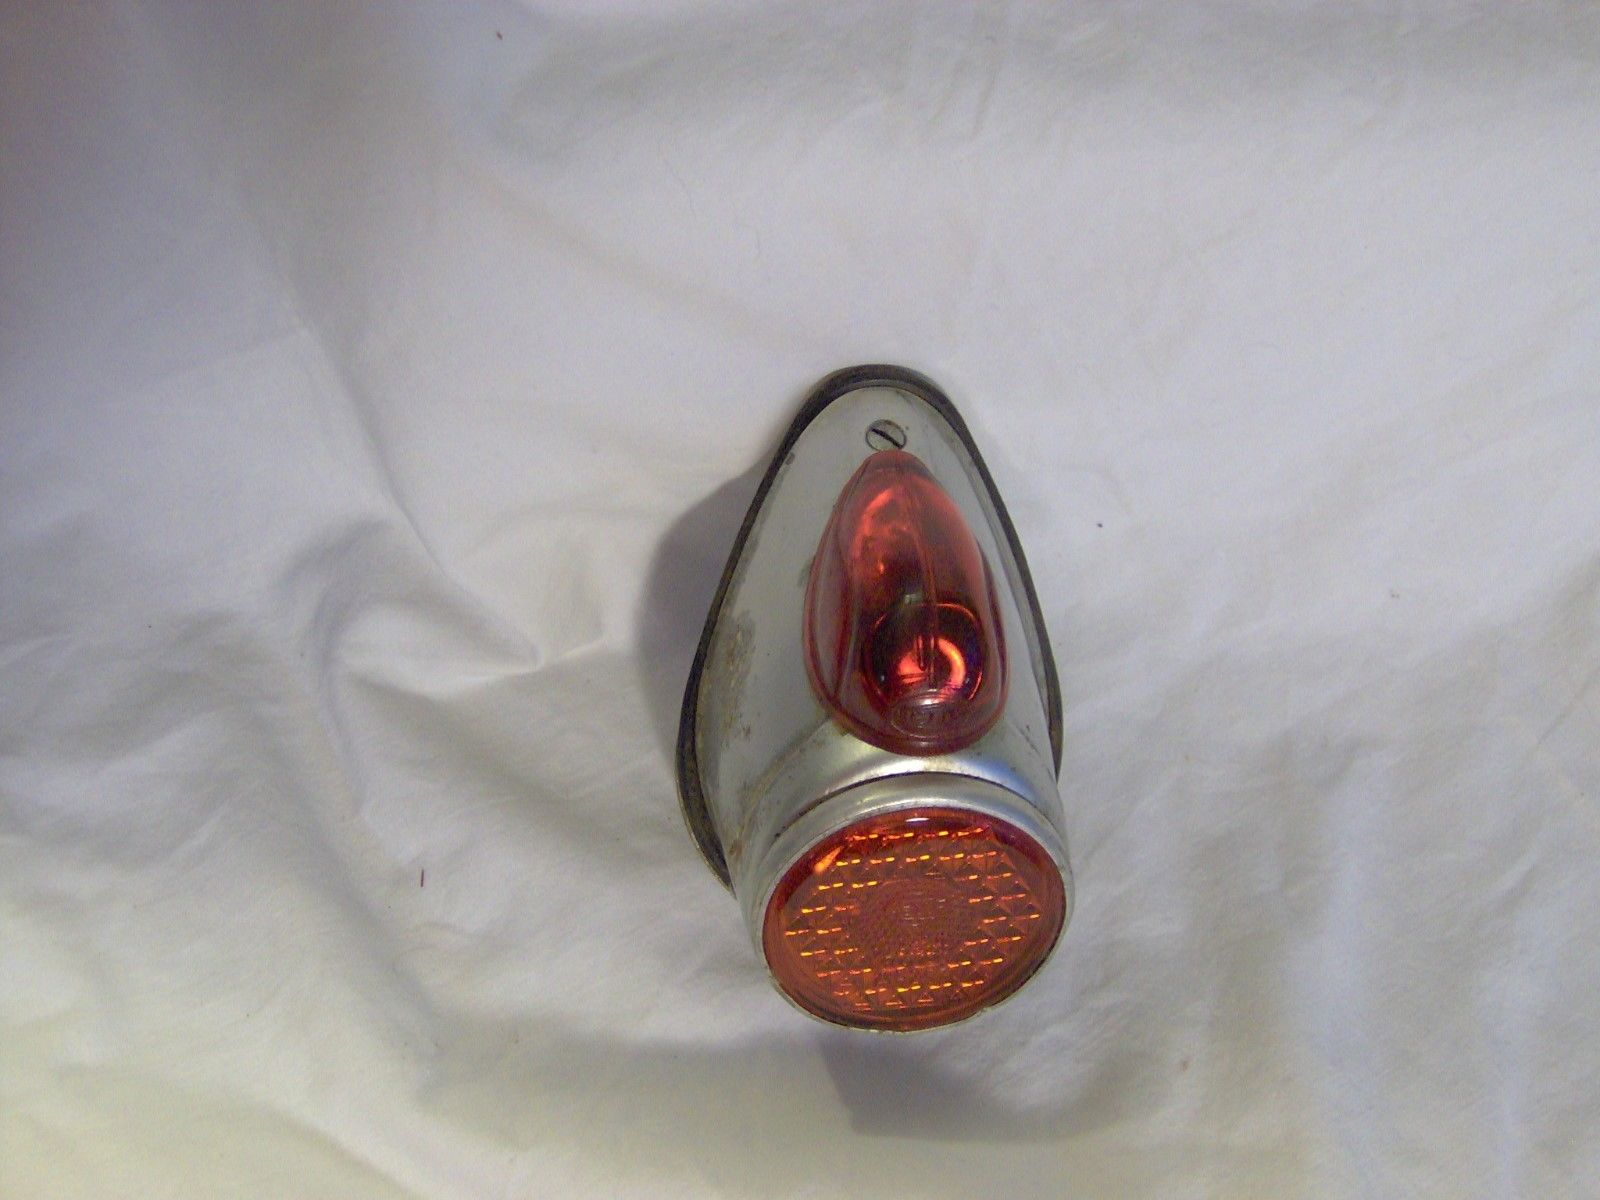 050.4.5500.0 Allstate Hella Taillight